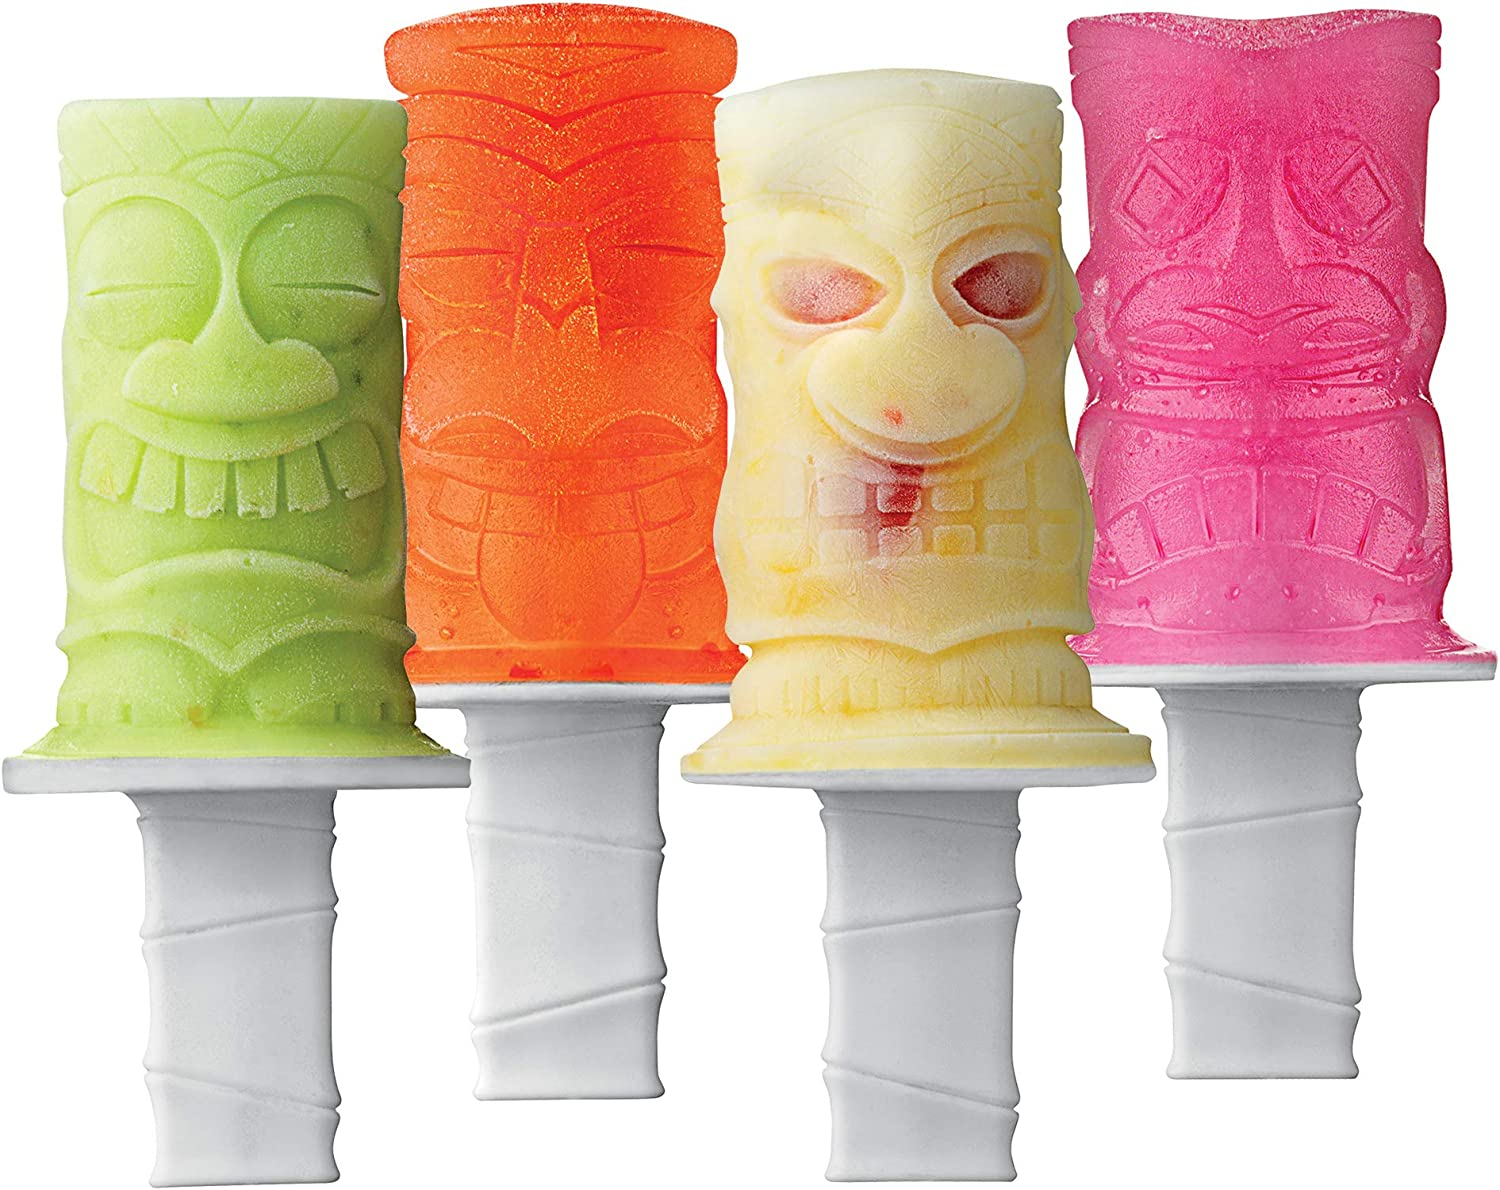 Tovolo Tiki Ice Pop Molds, Flexible Silicone, Dishwasher Safe, Set of 4 Popsicle Makers with Sticks